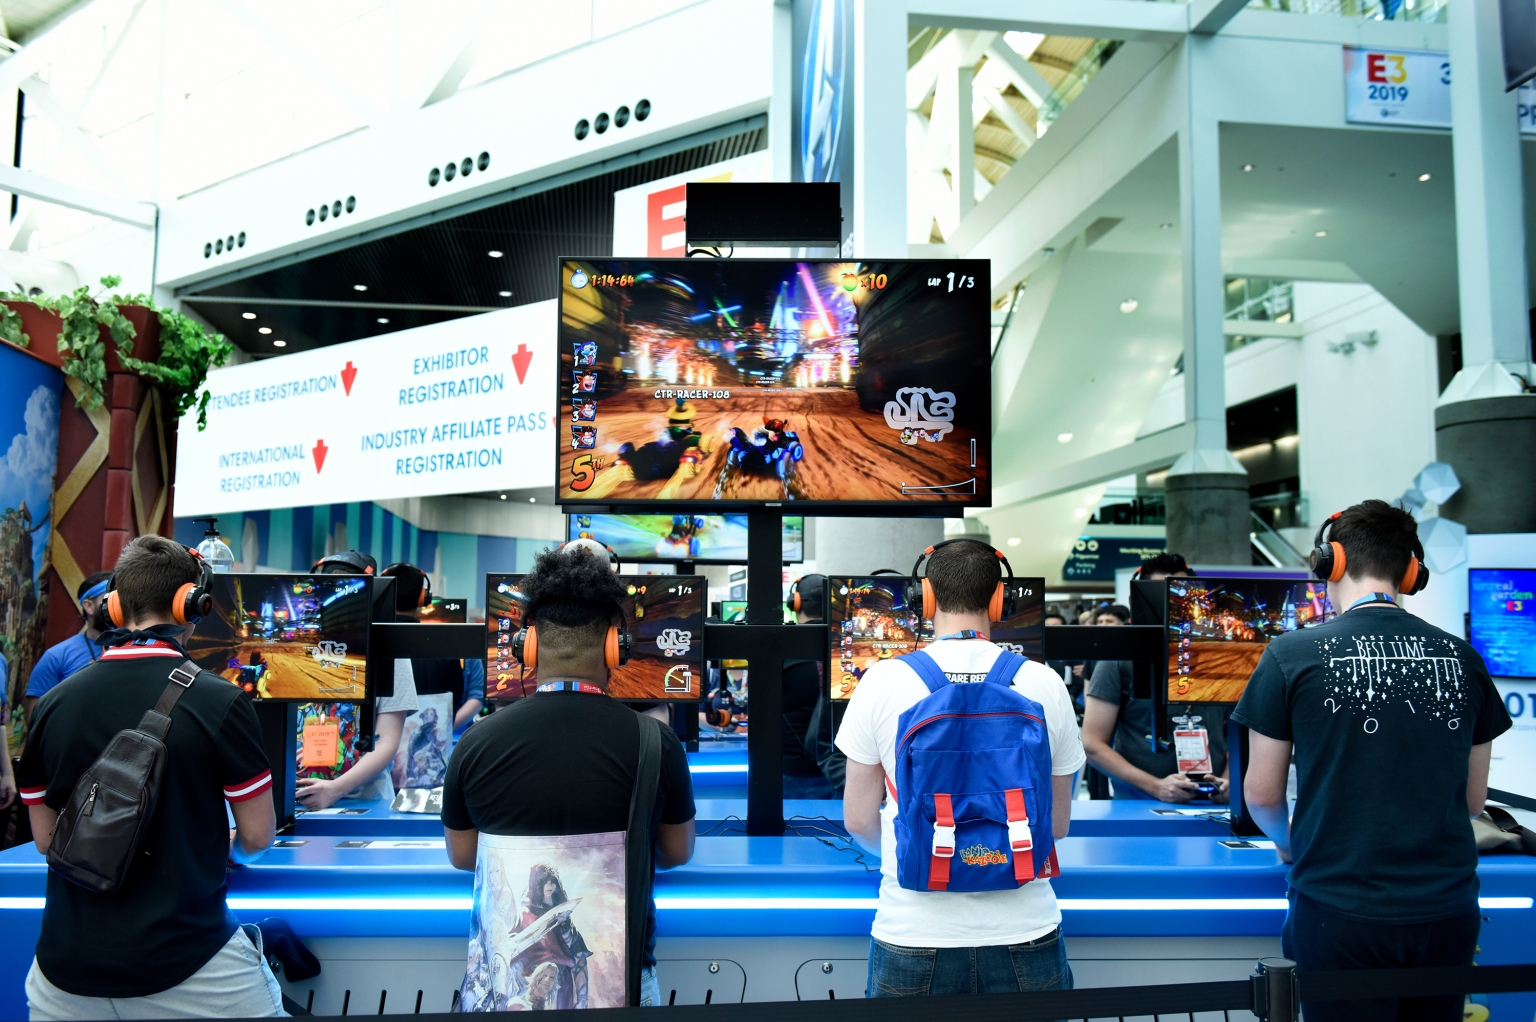 E3, America's biggest video game conference, is canceled because of coronavirus